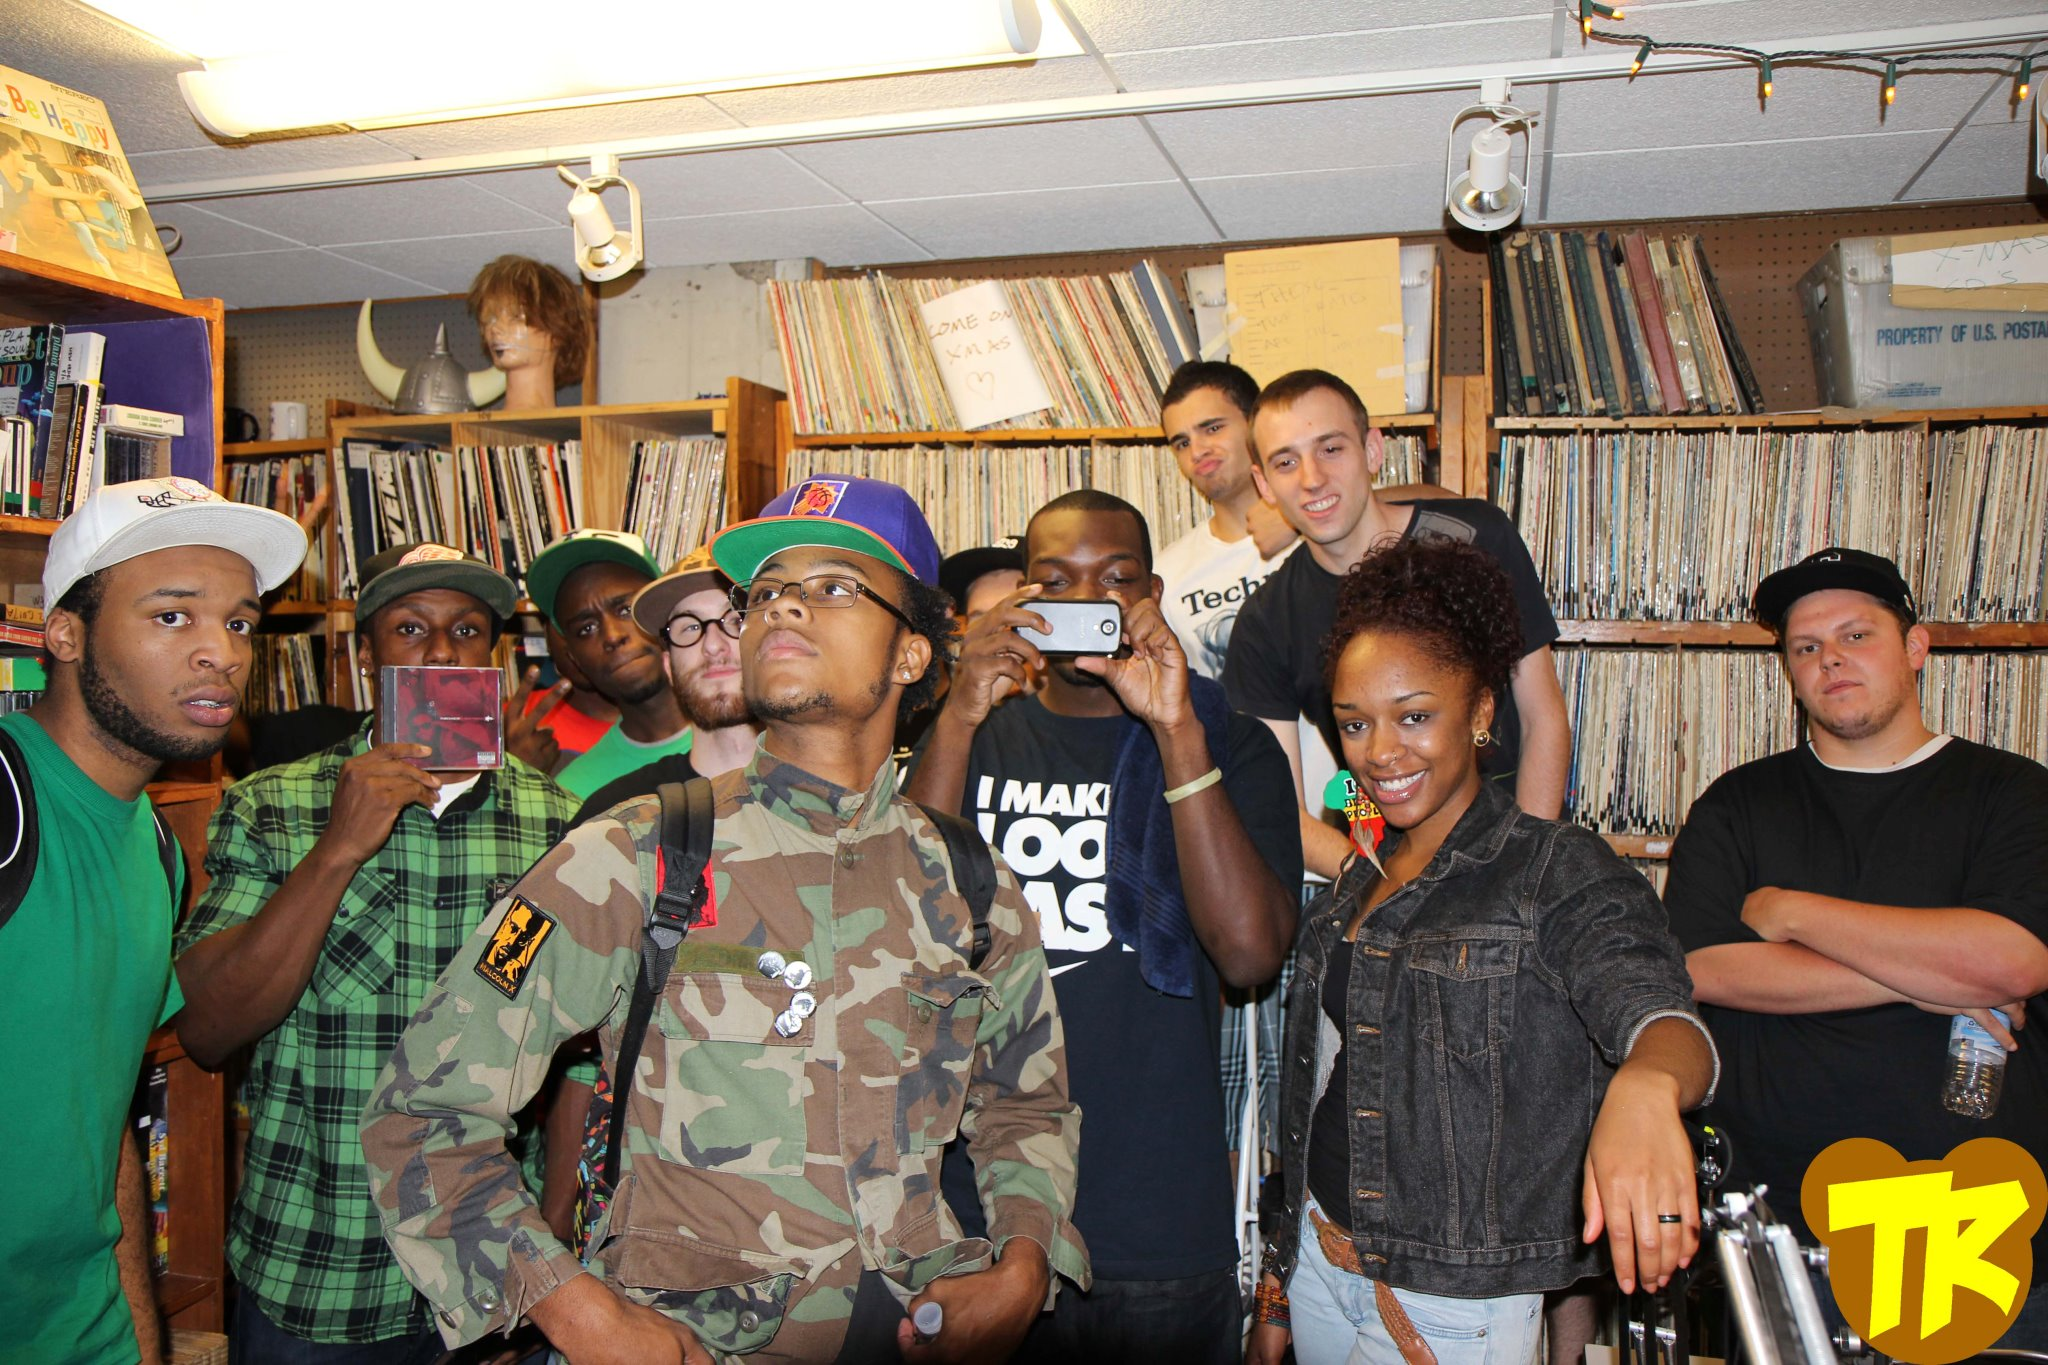 WCBN With DJ Ell and Teddy Ruckspin